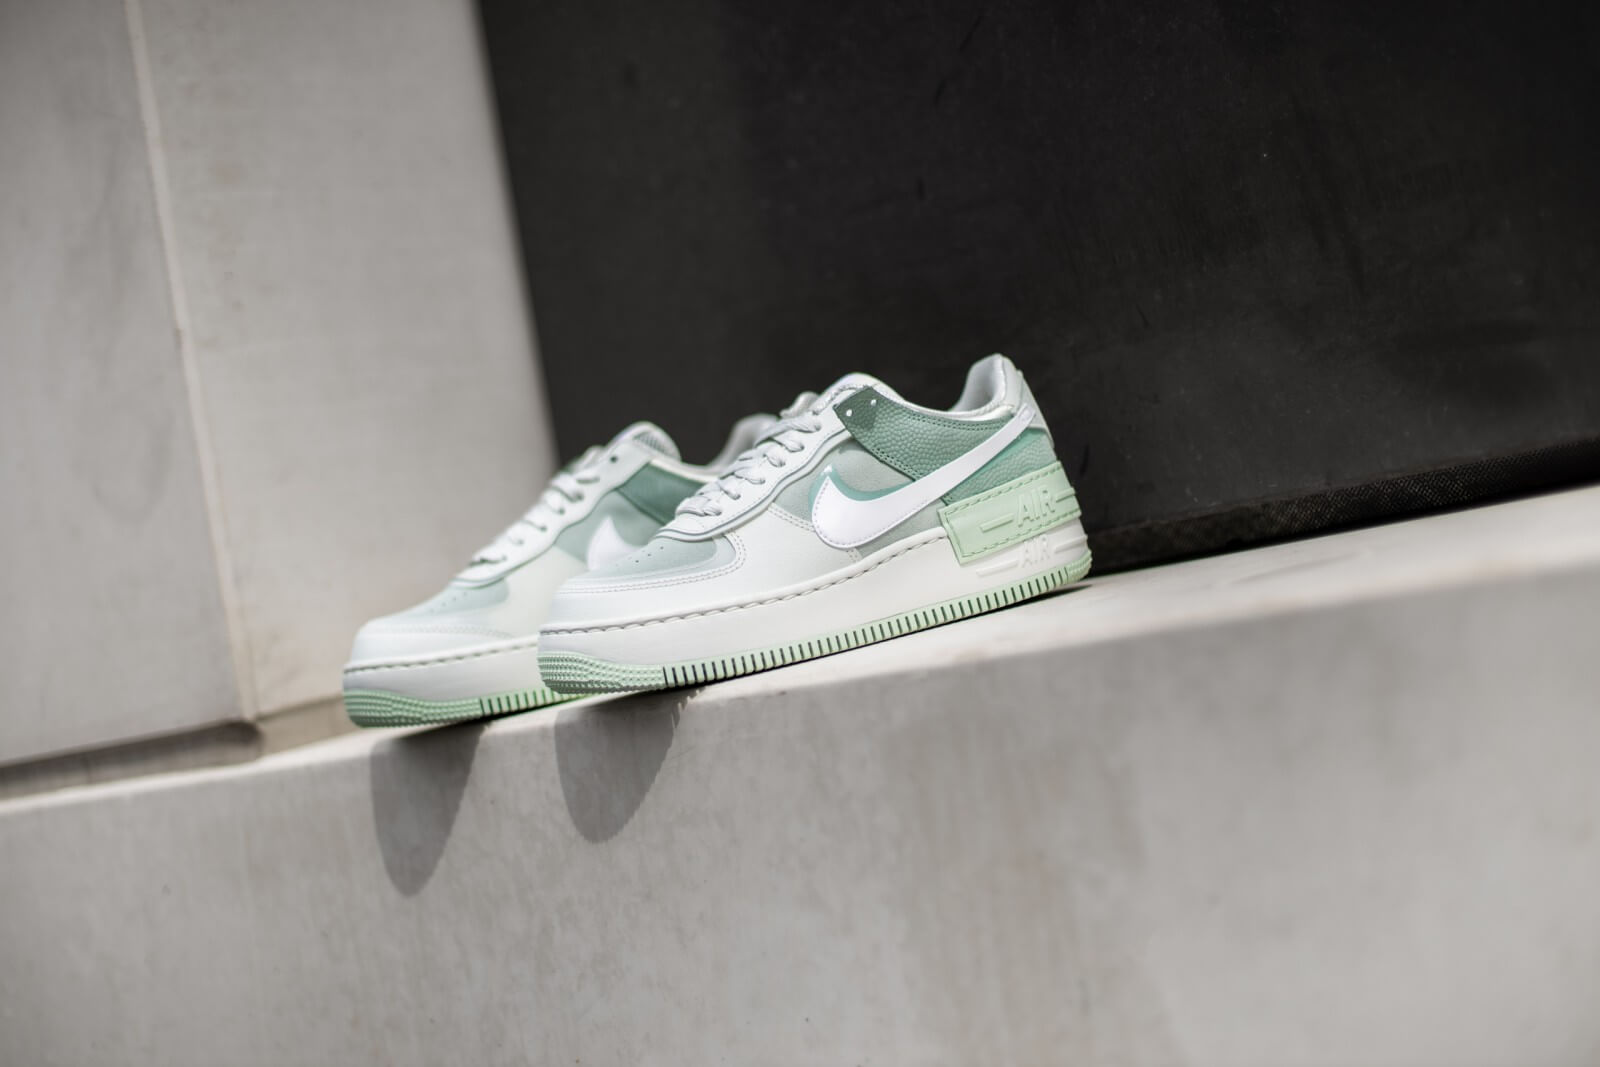 Nike Women S Air Force 1 Shadow Spruce Aura White Pistachio Frost Cw2655 001